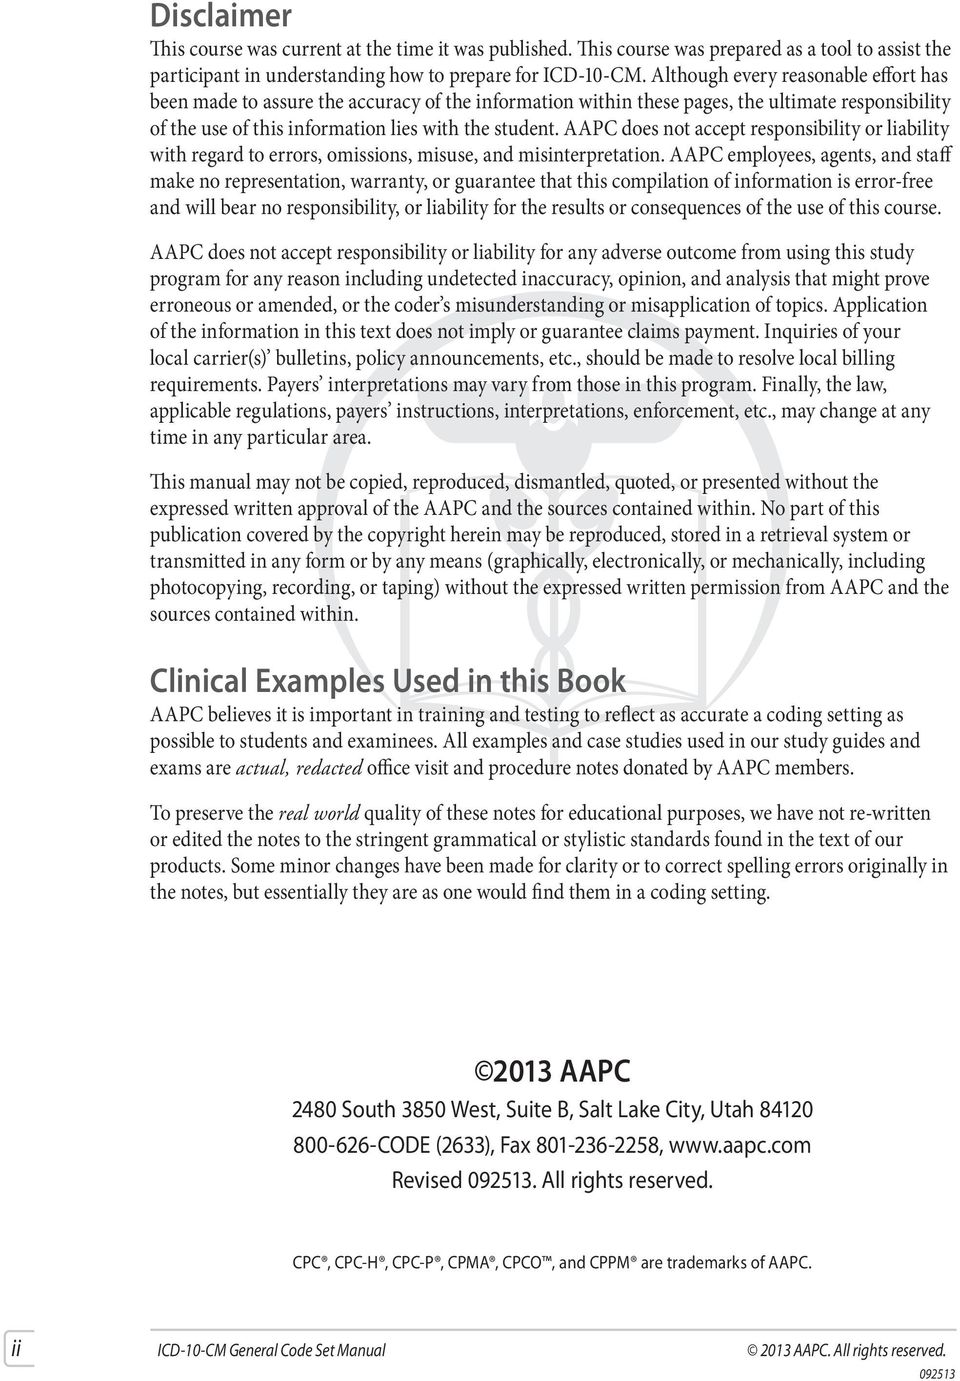 Official Cpc Study Guide 2013